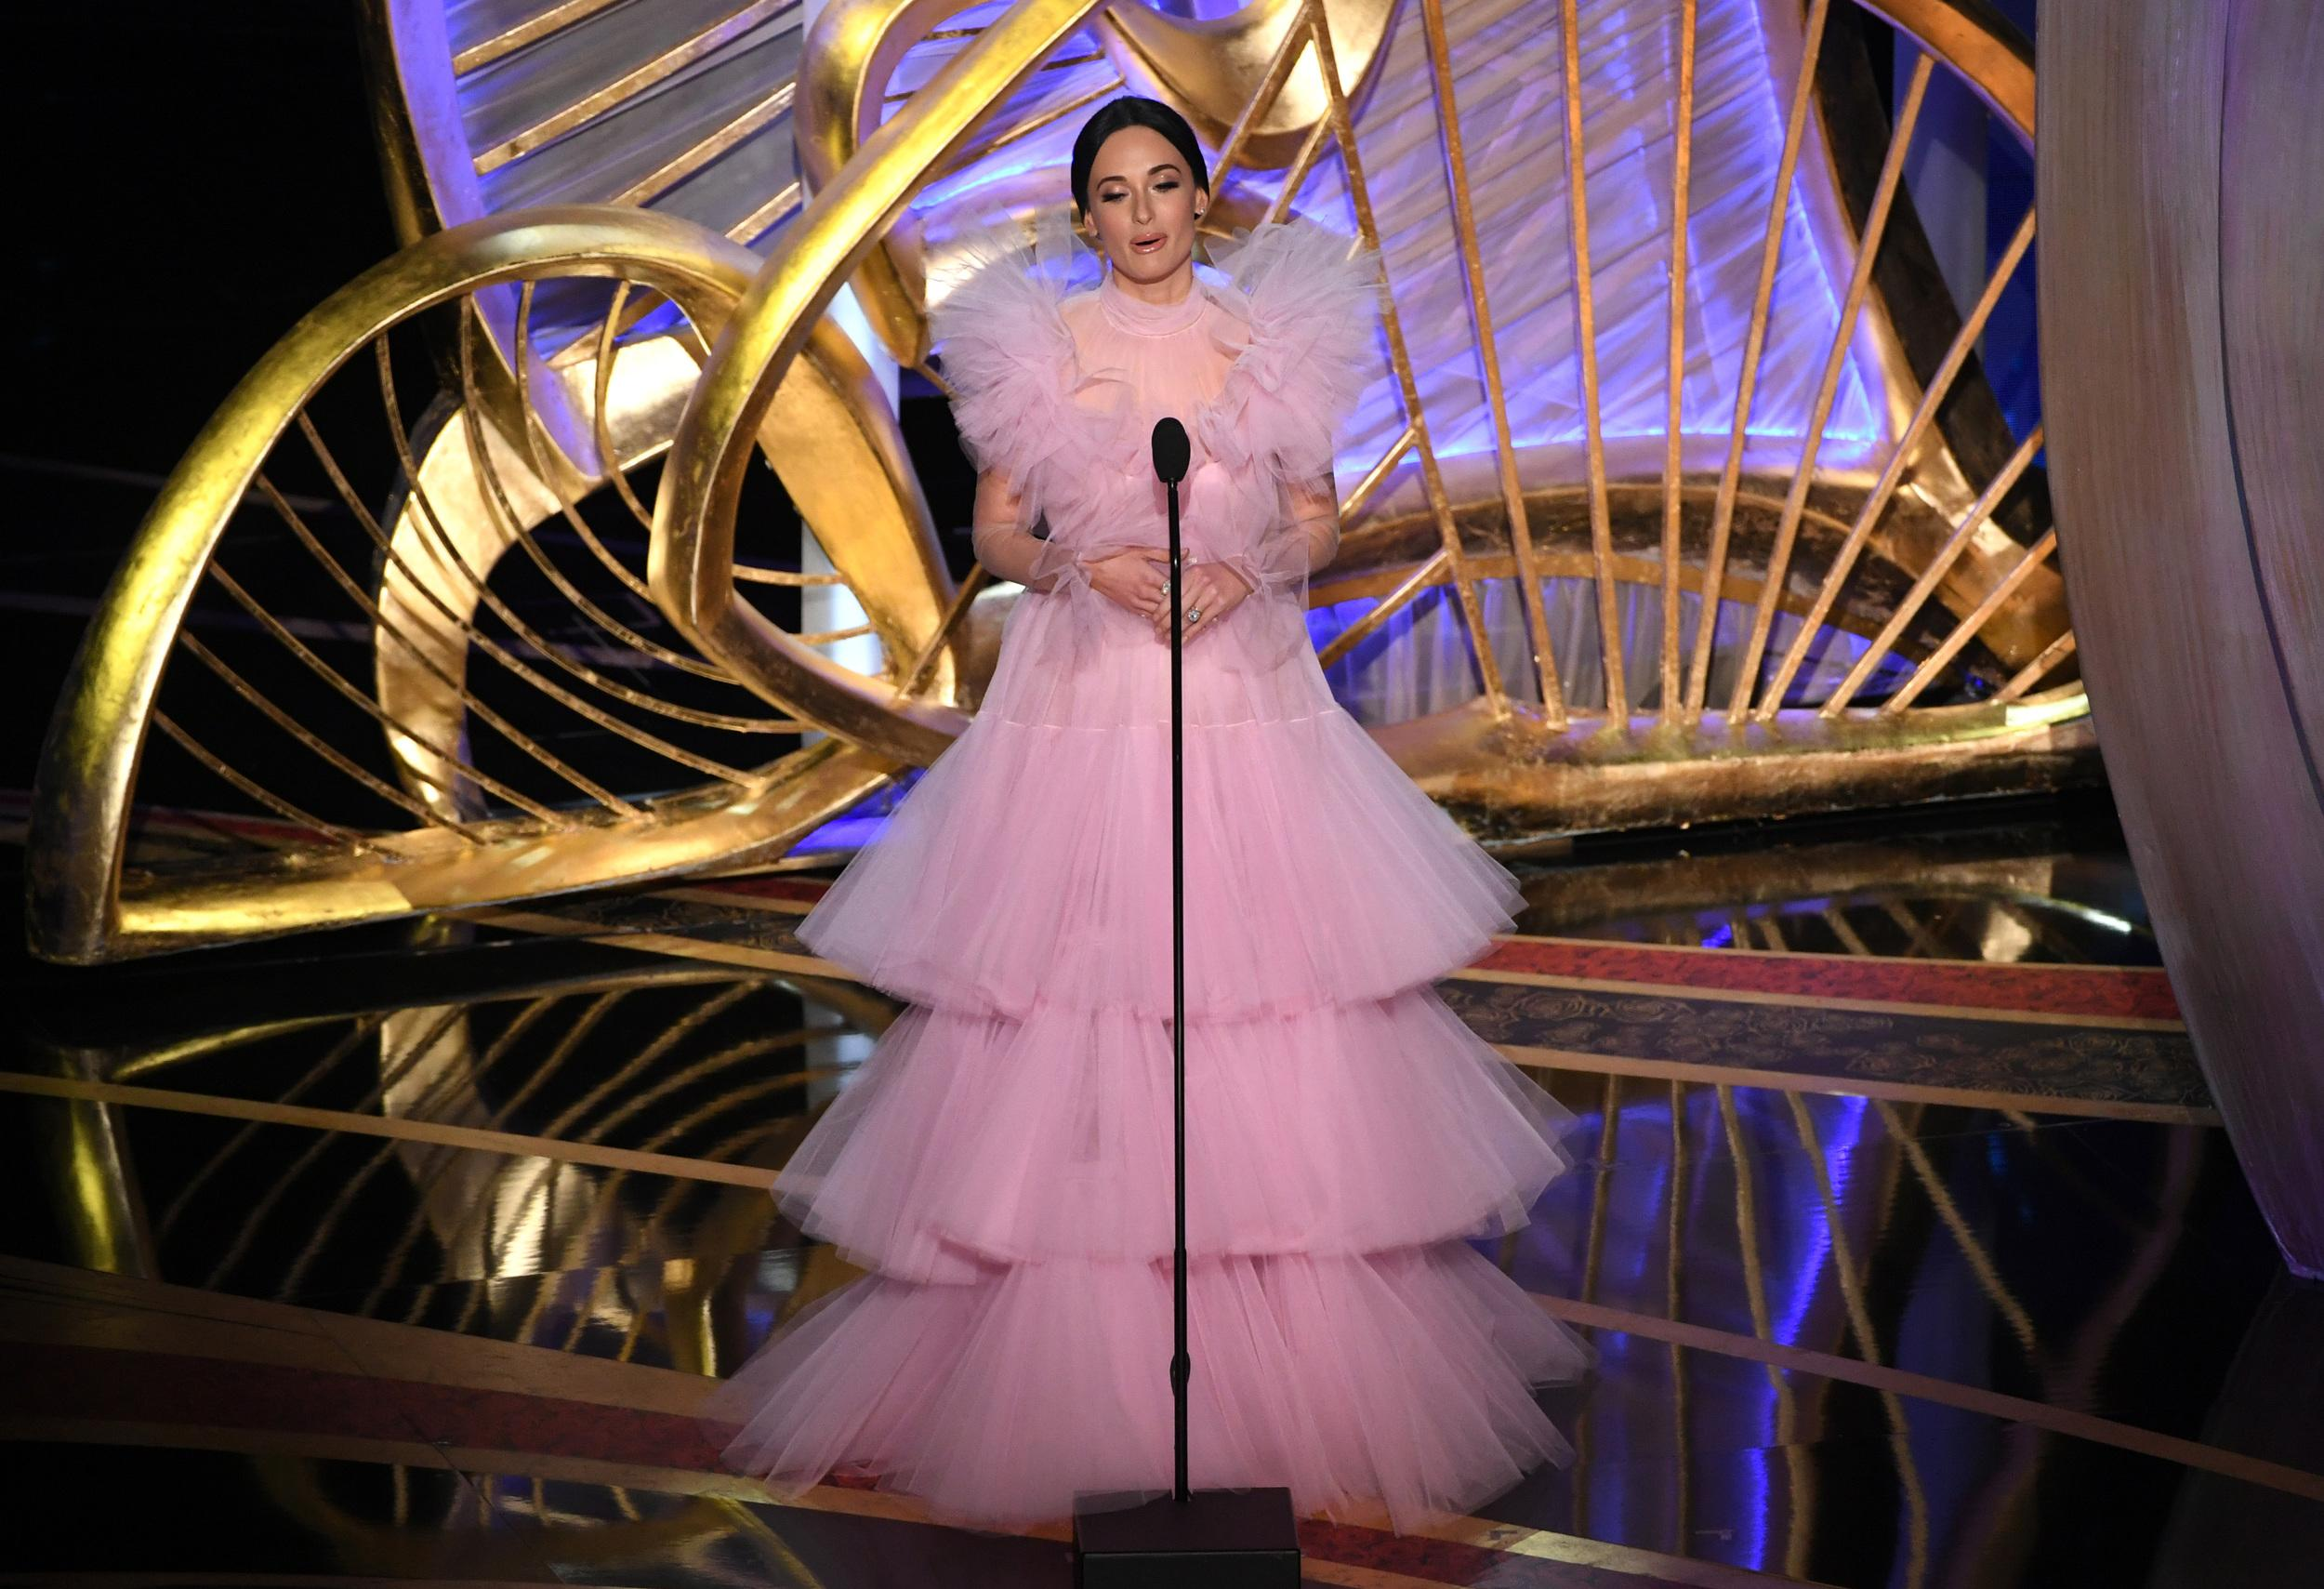 HOLLYWOOD, CALIFORNIA - FEBRUARY 24: Kacey Musgraves speaks onstage during the 91st Annual Academy Awards at Dolby Theatre on February 24, 2019 in Hollywood, California. (Photo by Kevin Winter/Getty Images)